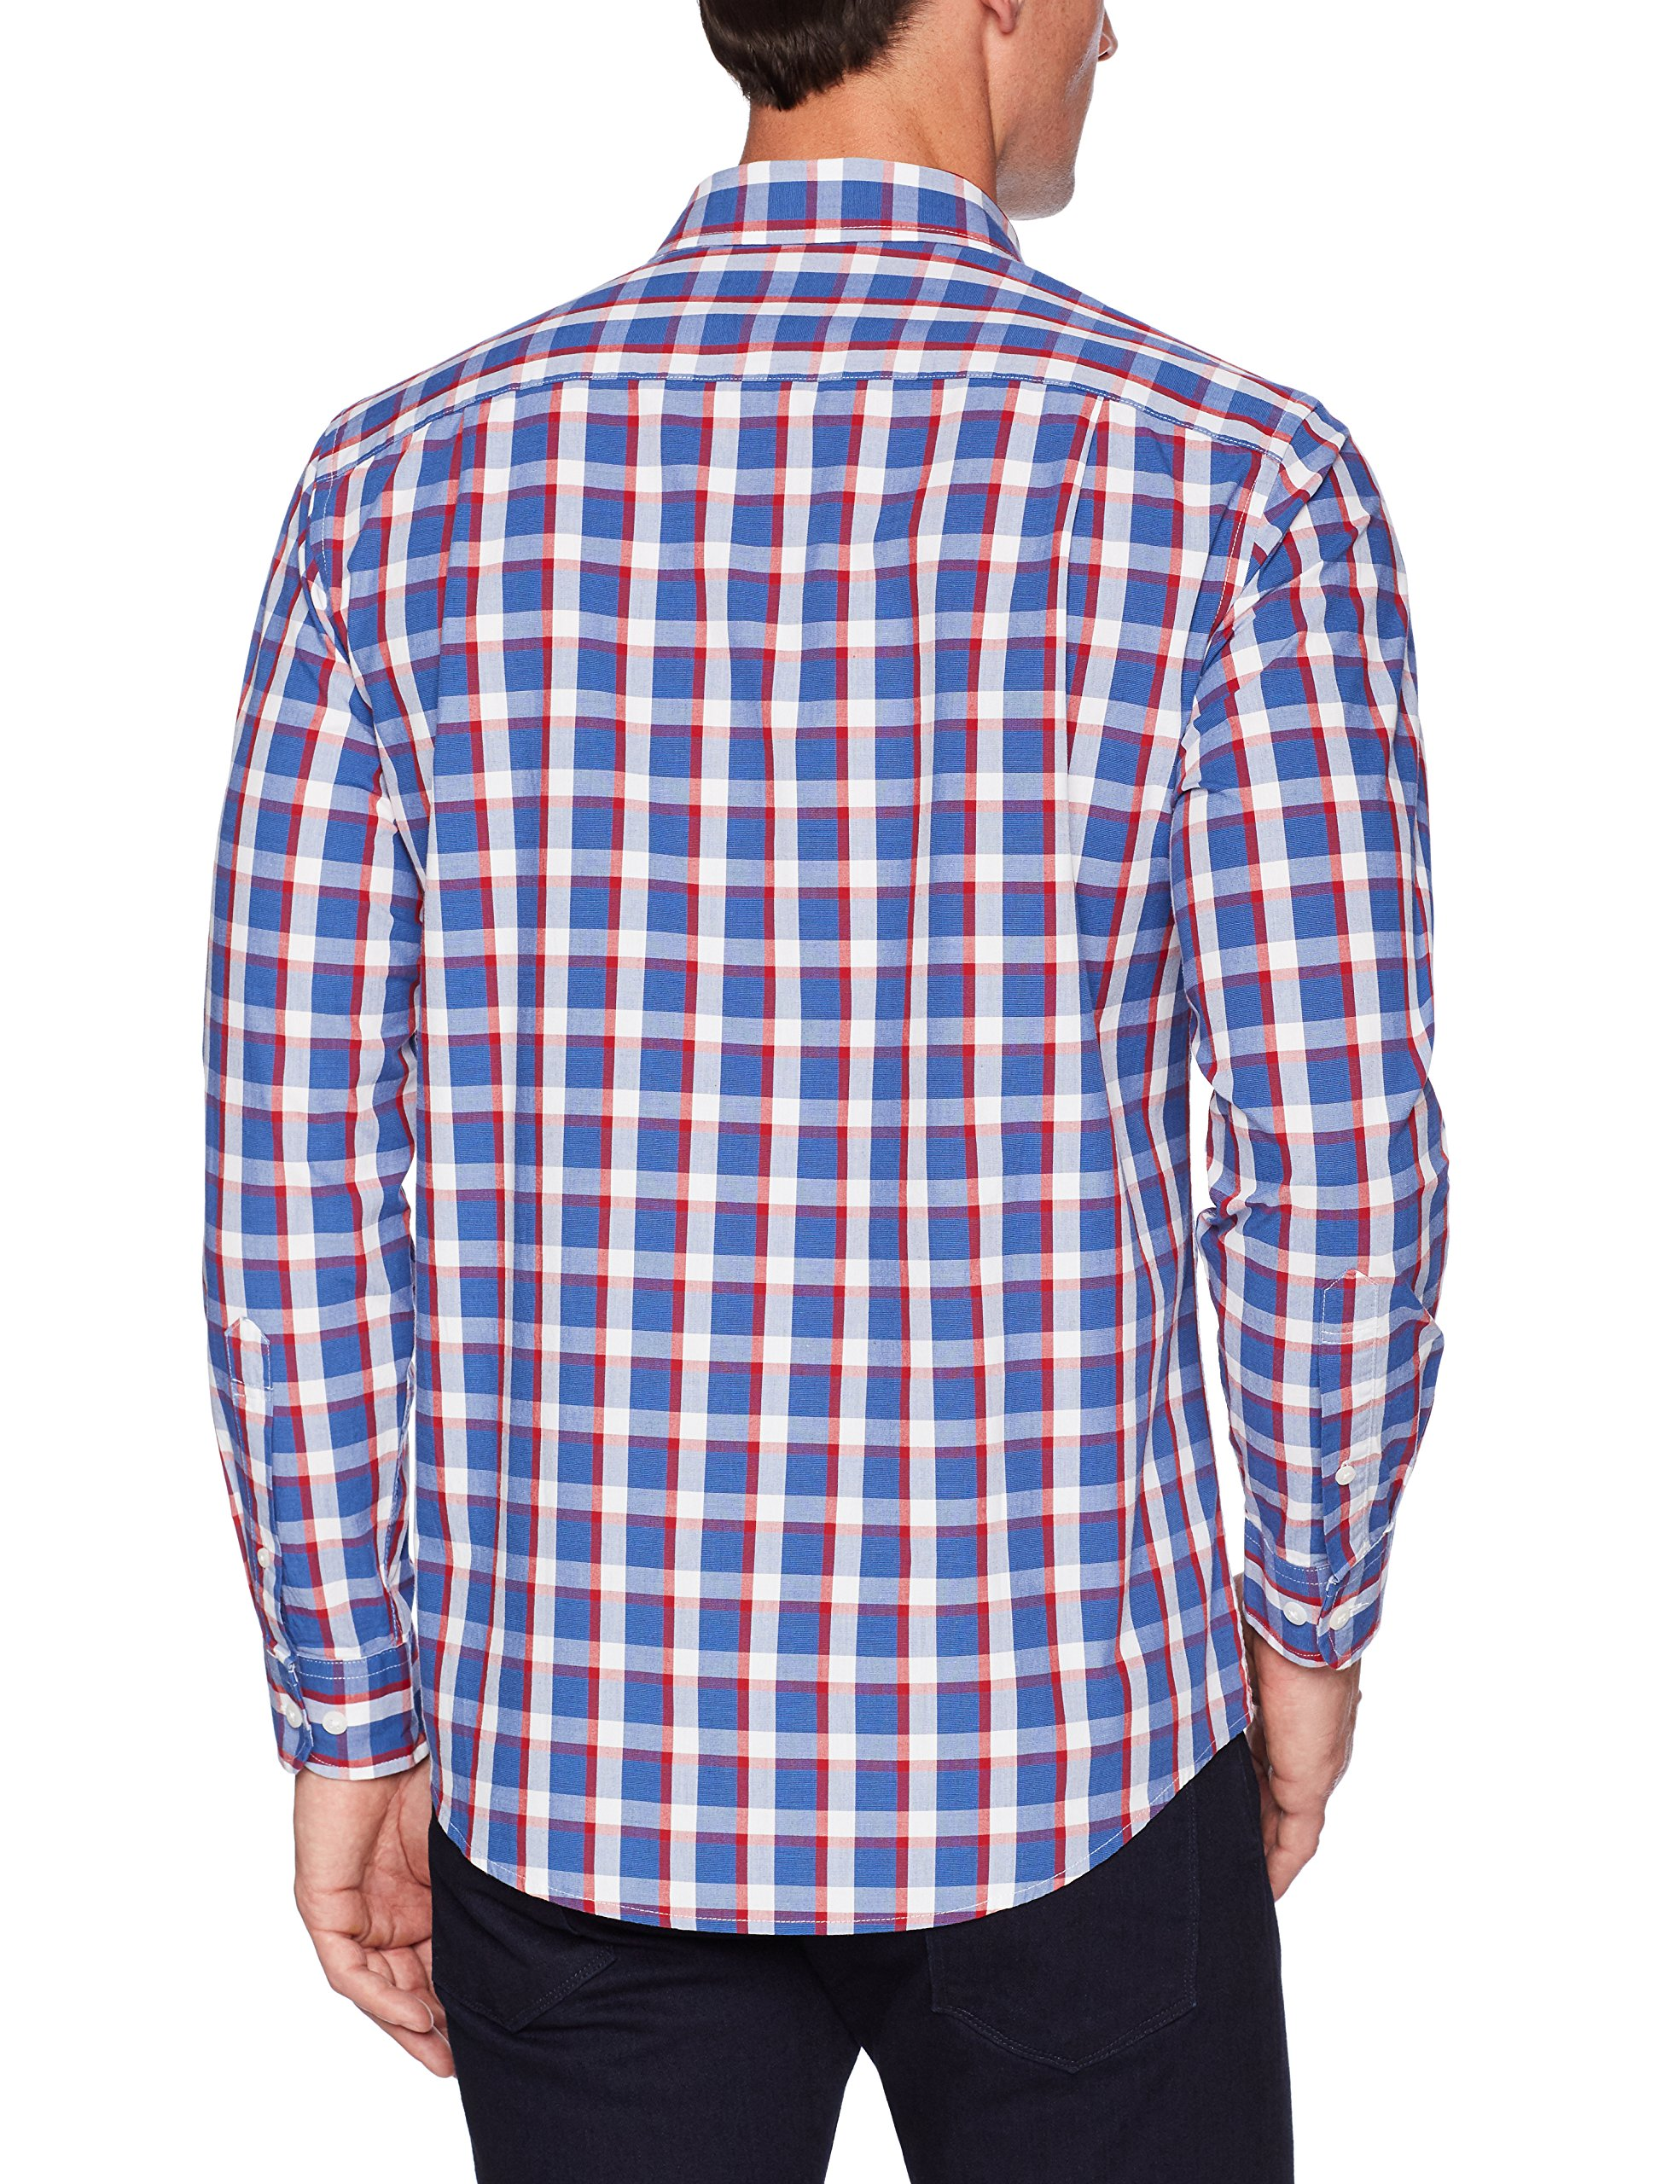 Amazon Essentials Men's Regular-Fit Long-Sleeve Plaid Shirt, blue/red plaid, Large by Amazon Essentials (Image #4)